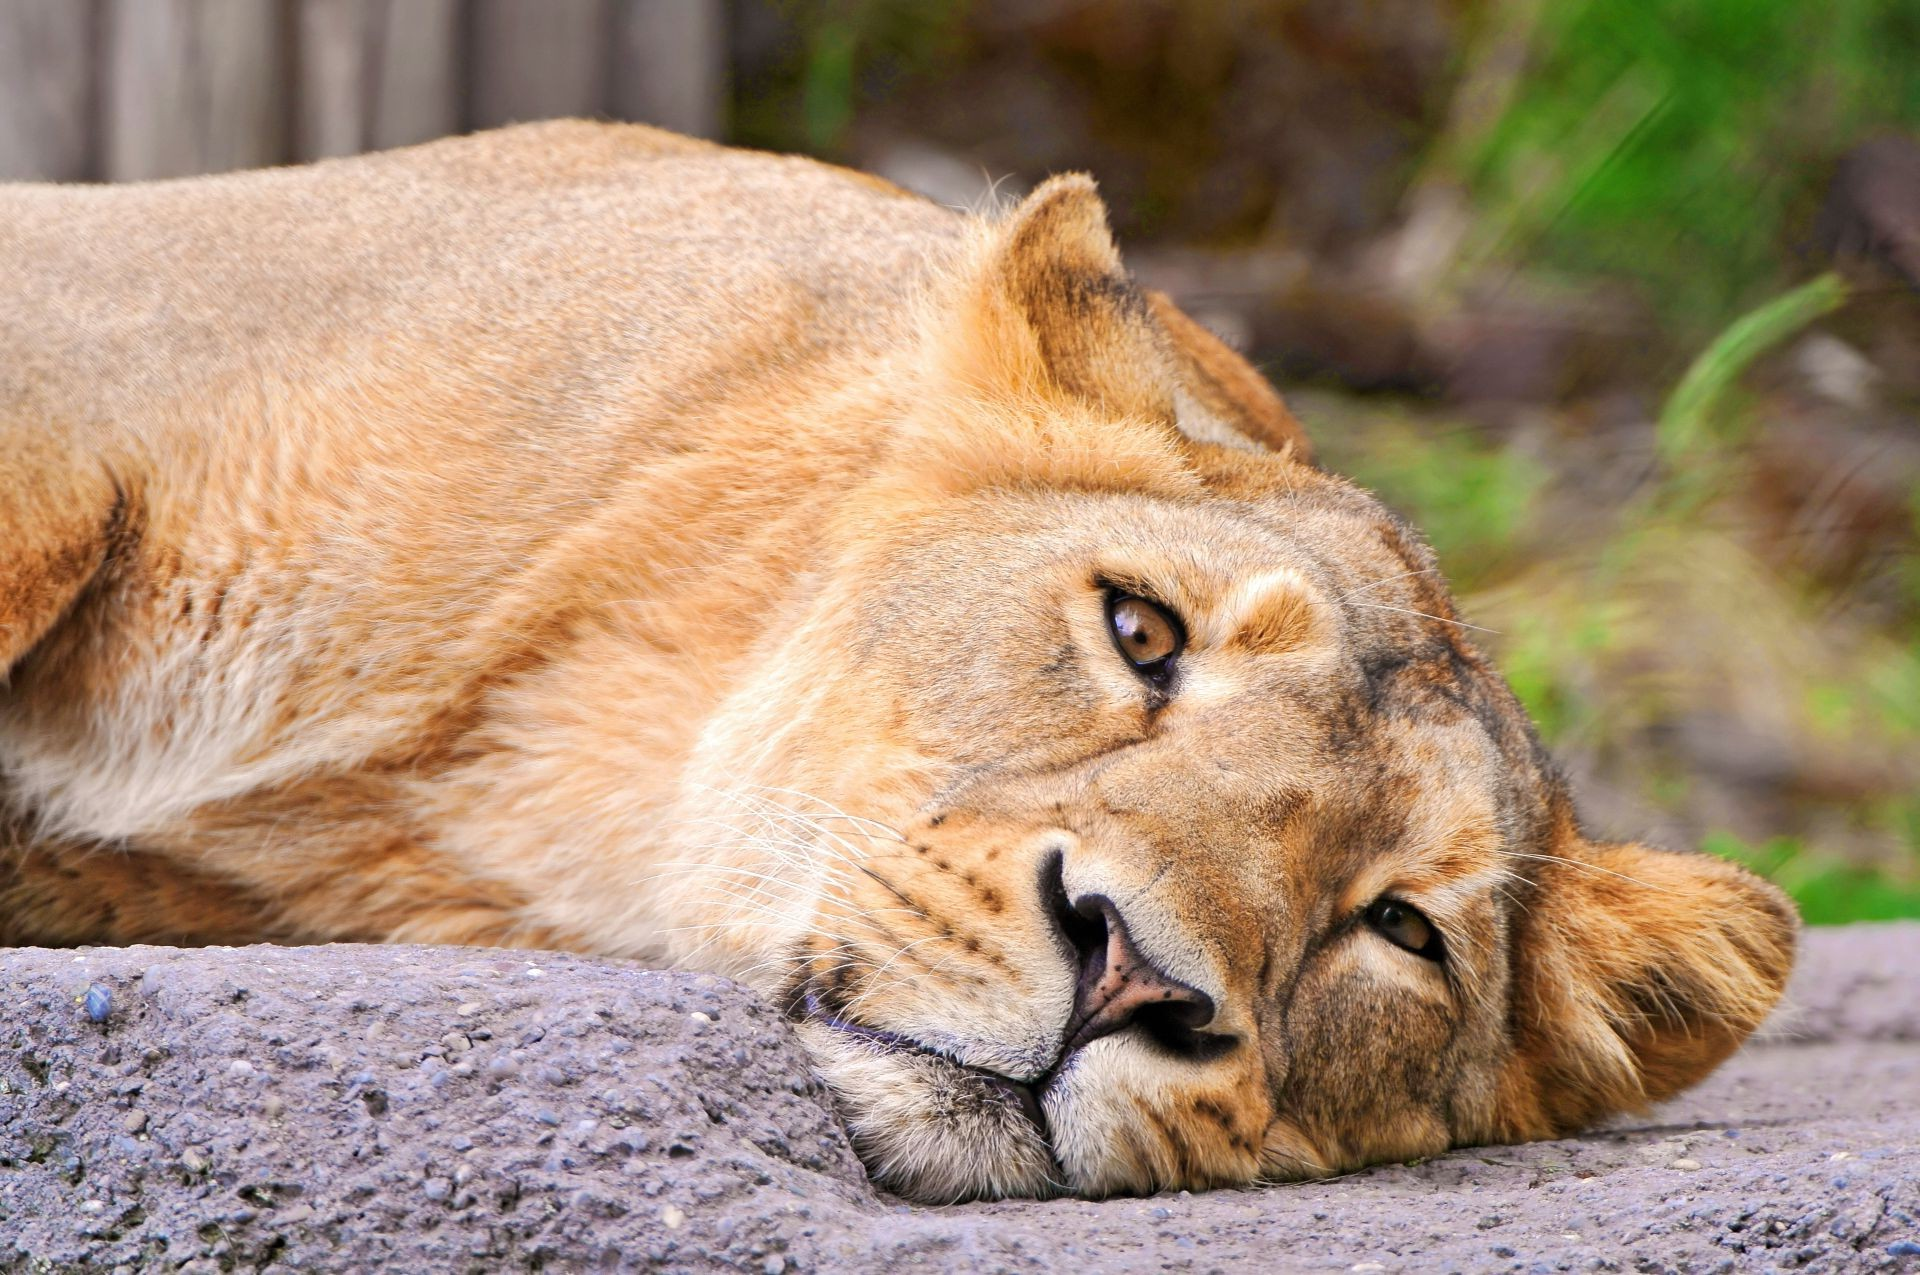 Lioness Looking Lion Face Lies Android Wallpapers For Free